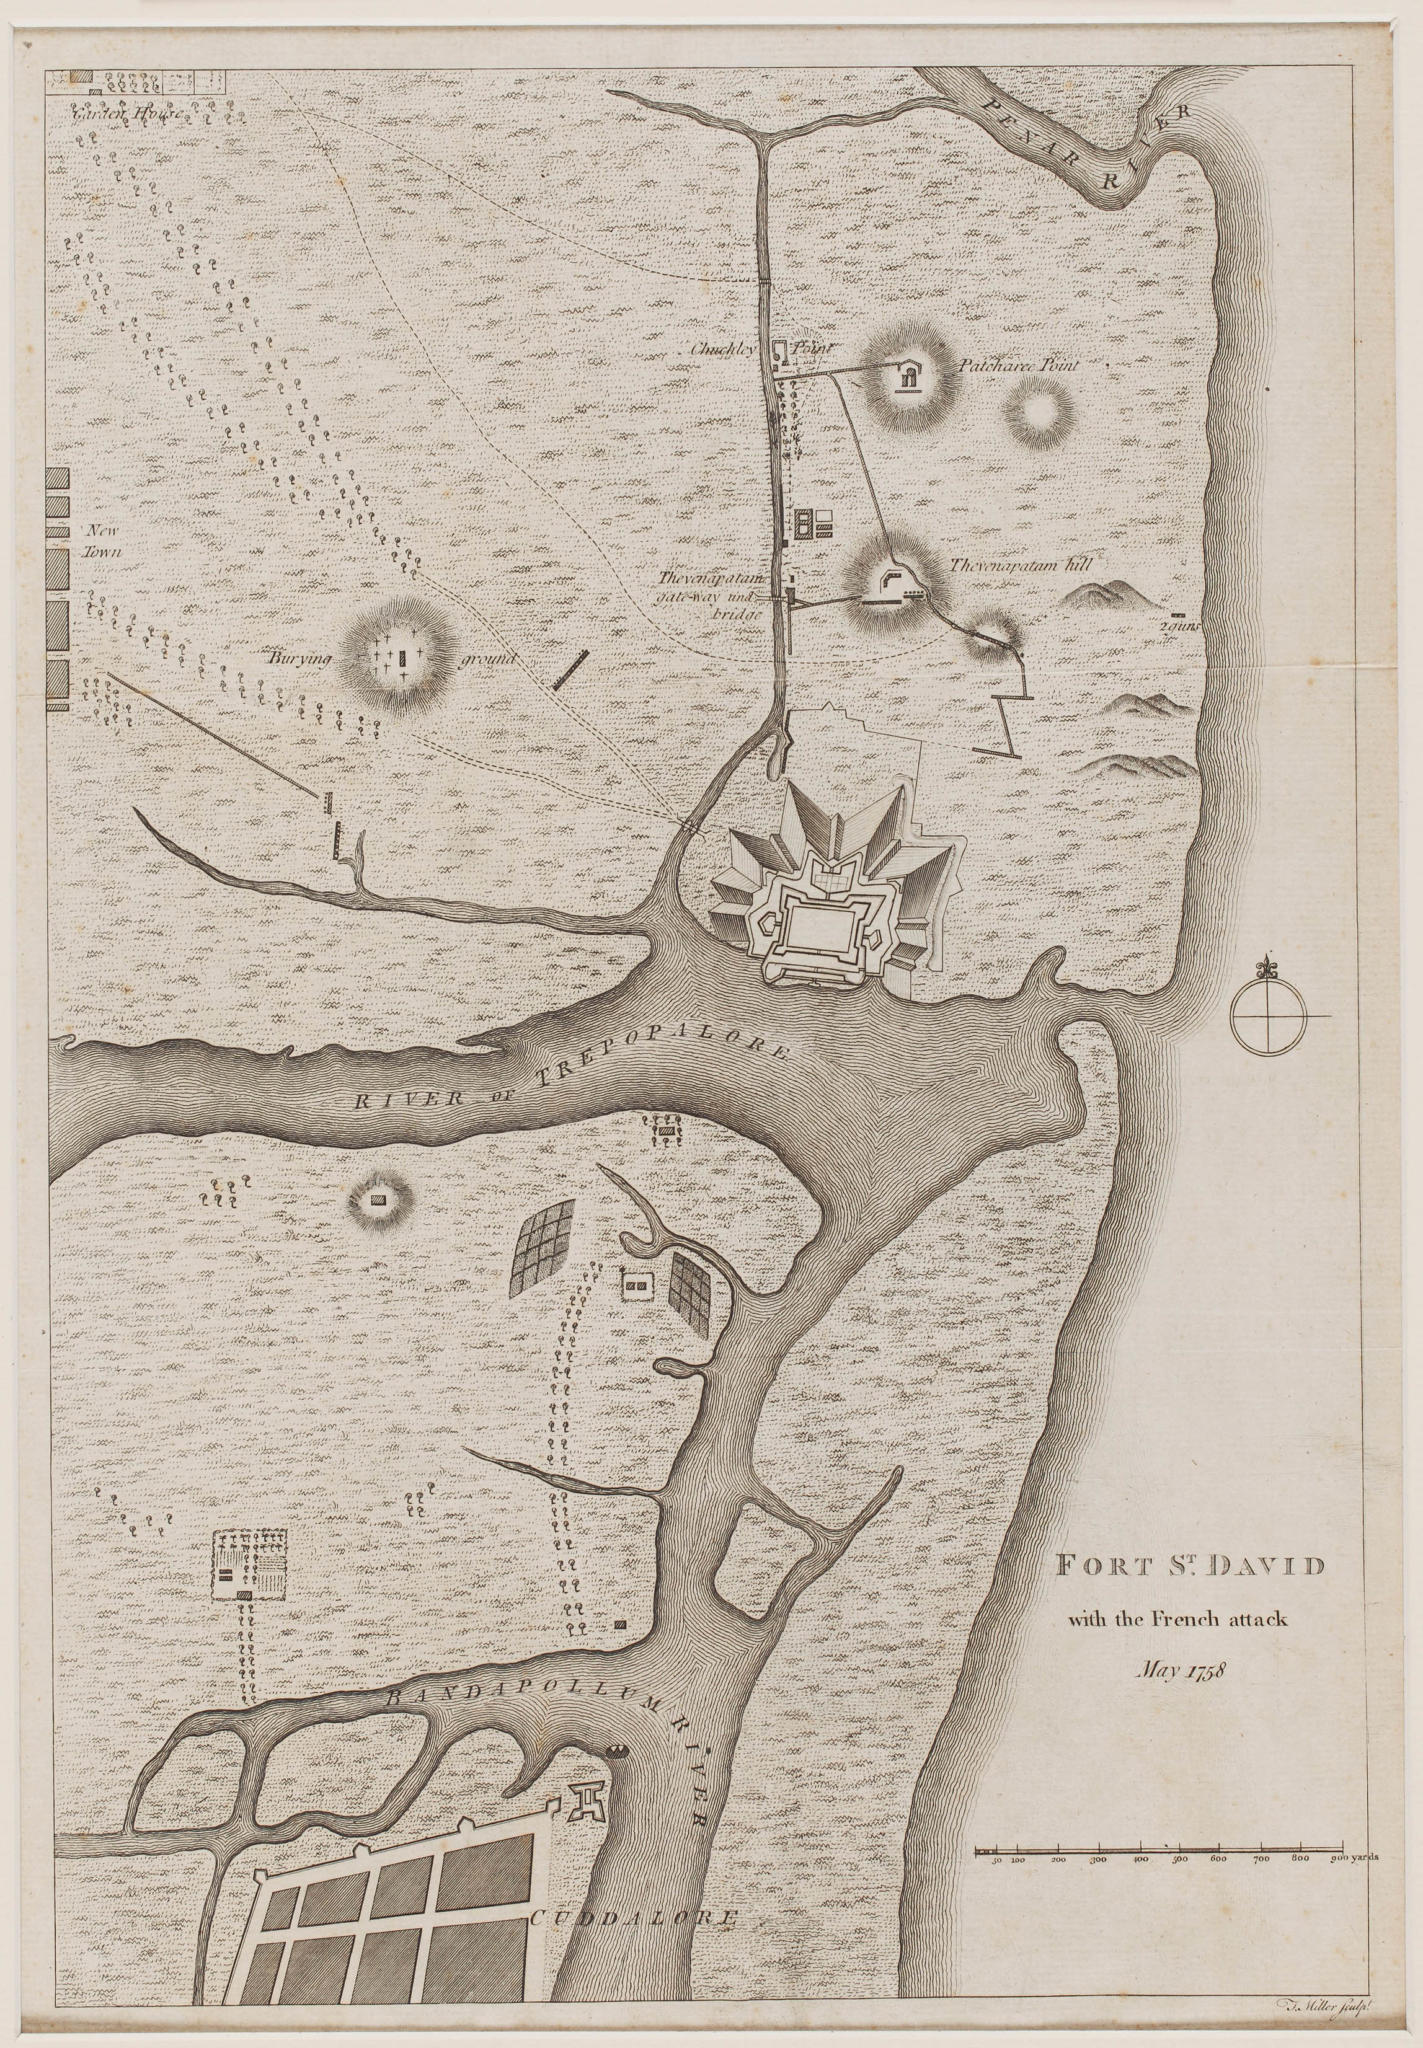 Early Indian Maps - Cartography, Indian Cartography, Indian maps, Maps, Shifting Selves